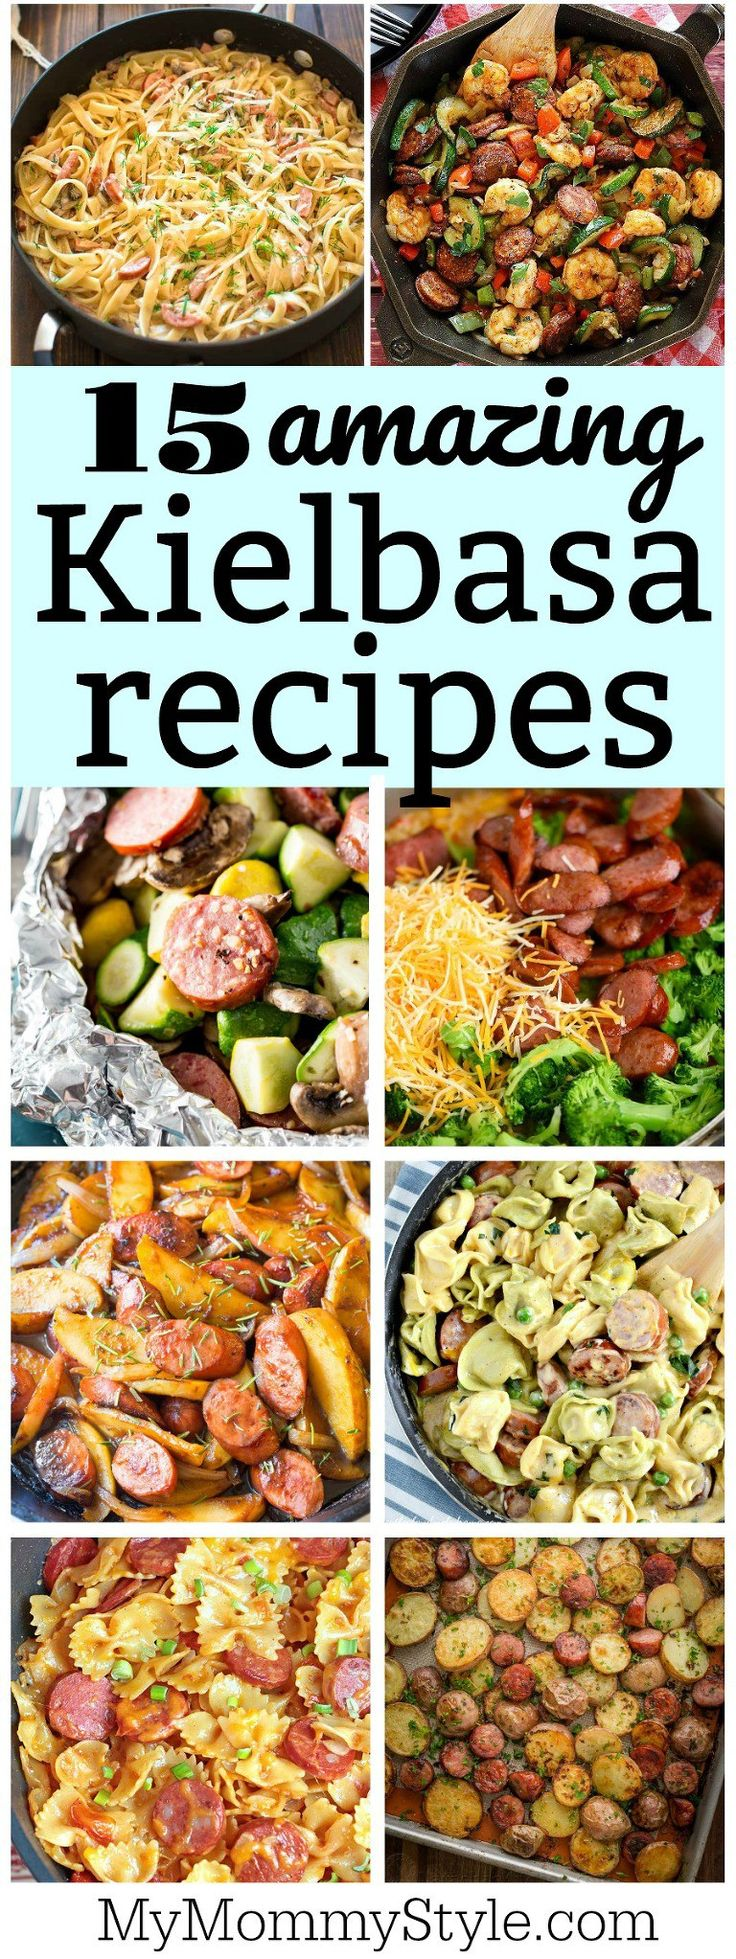 Have you ever wondered how to cook kielbasa? Well, look no further! This is a roundup of all our favorite kielbasa recipes all in one place.